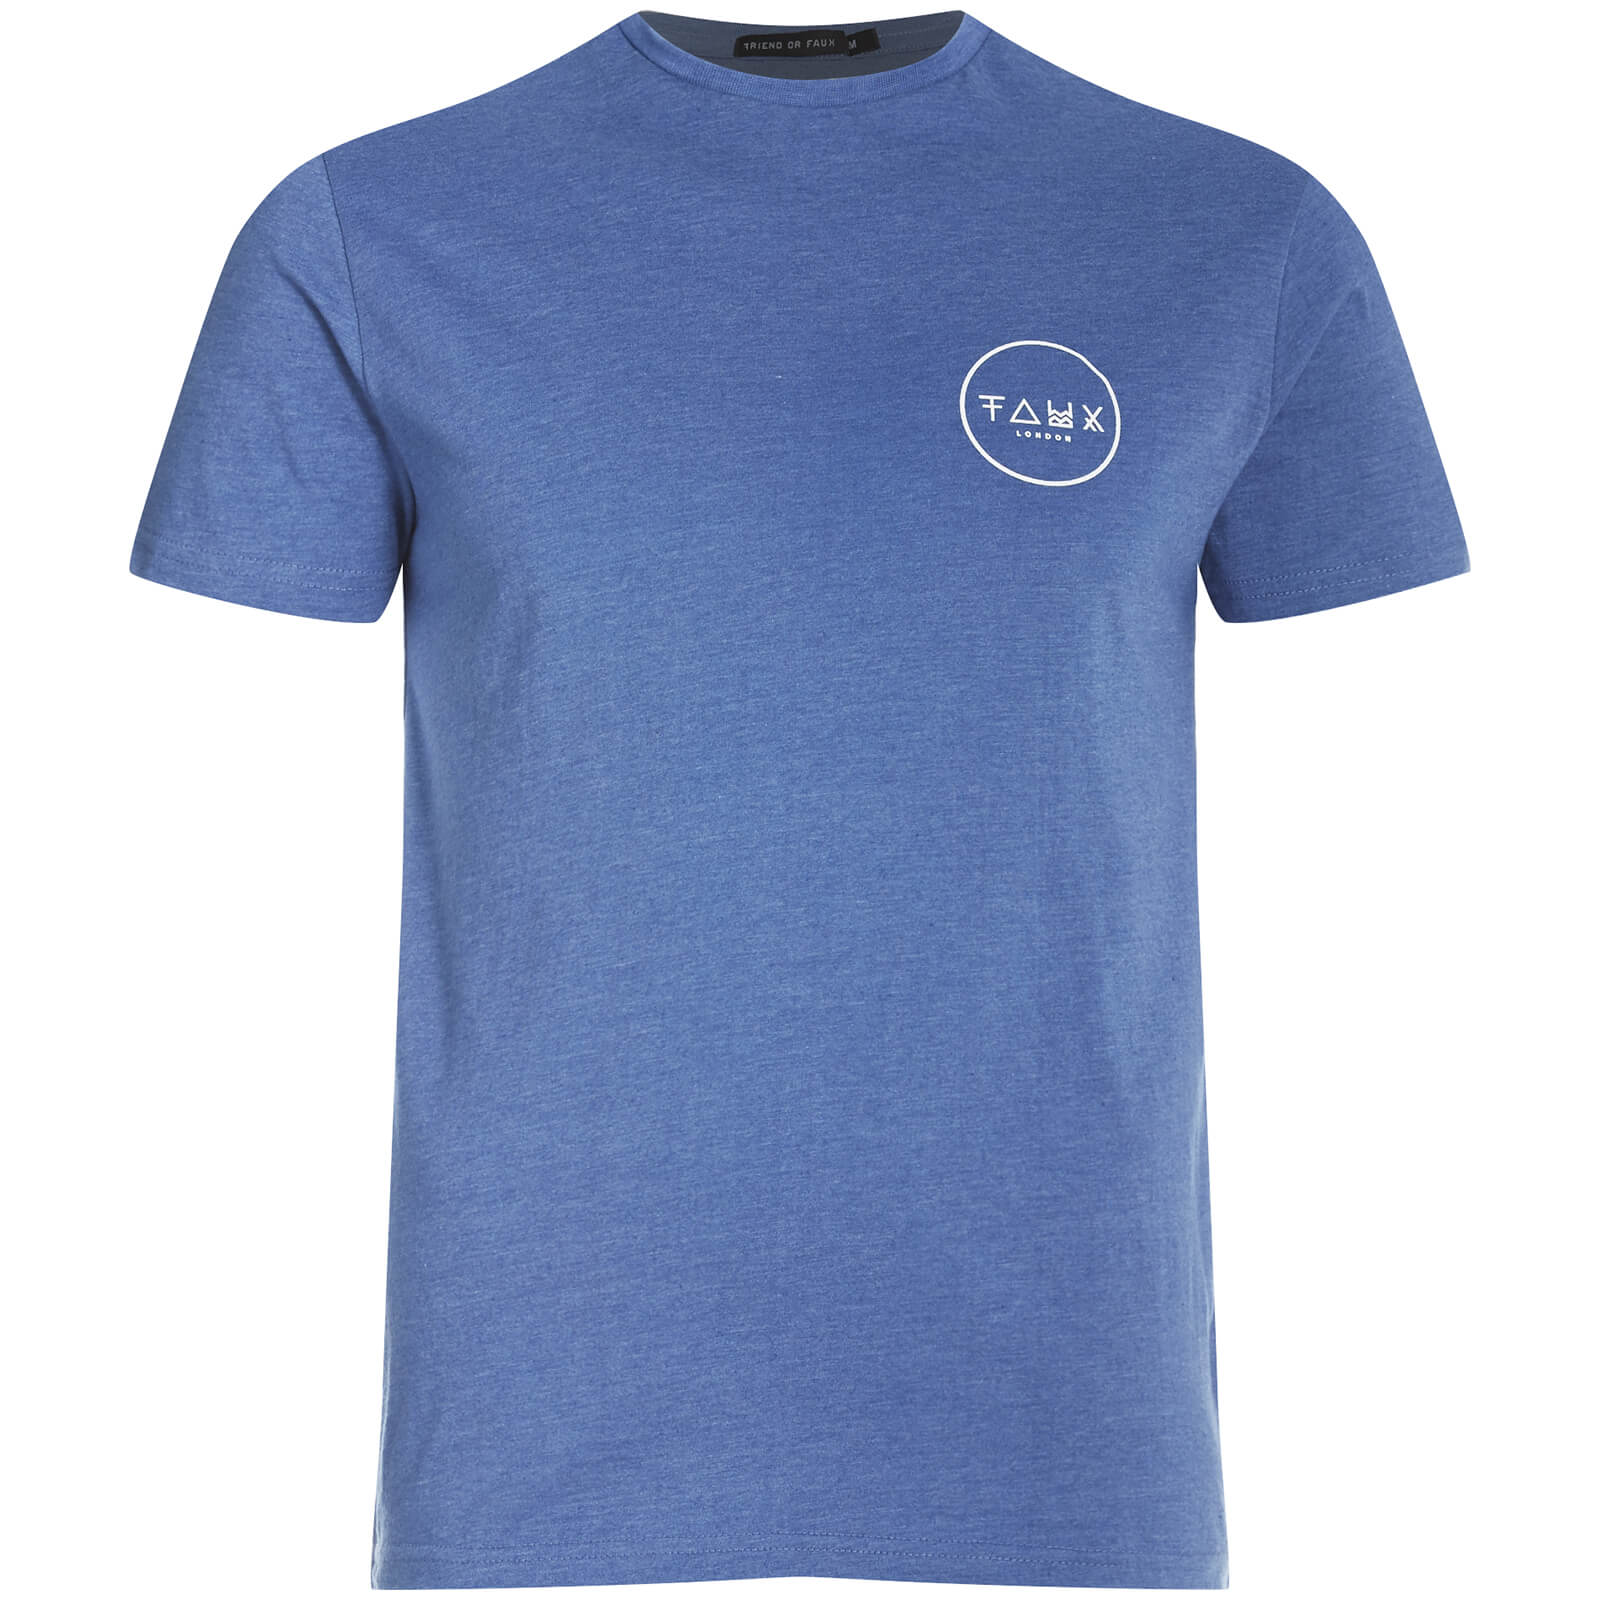 Friend or Faux Men s Cresent T-Shirt - Blue Clothing  2907846d6